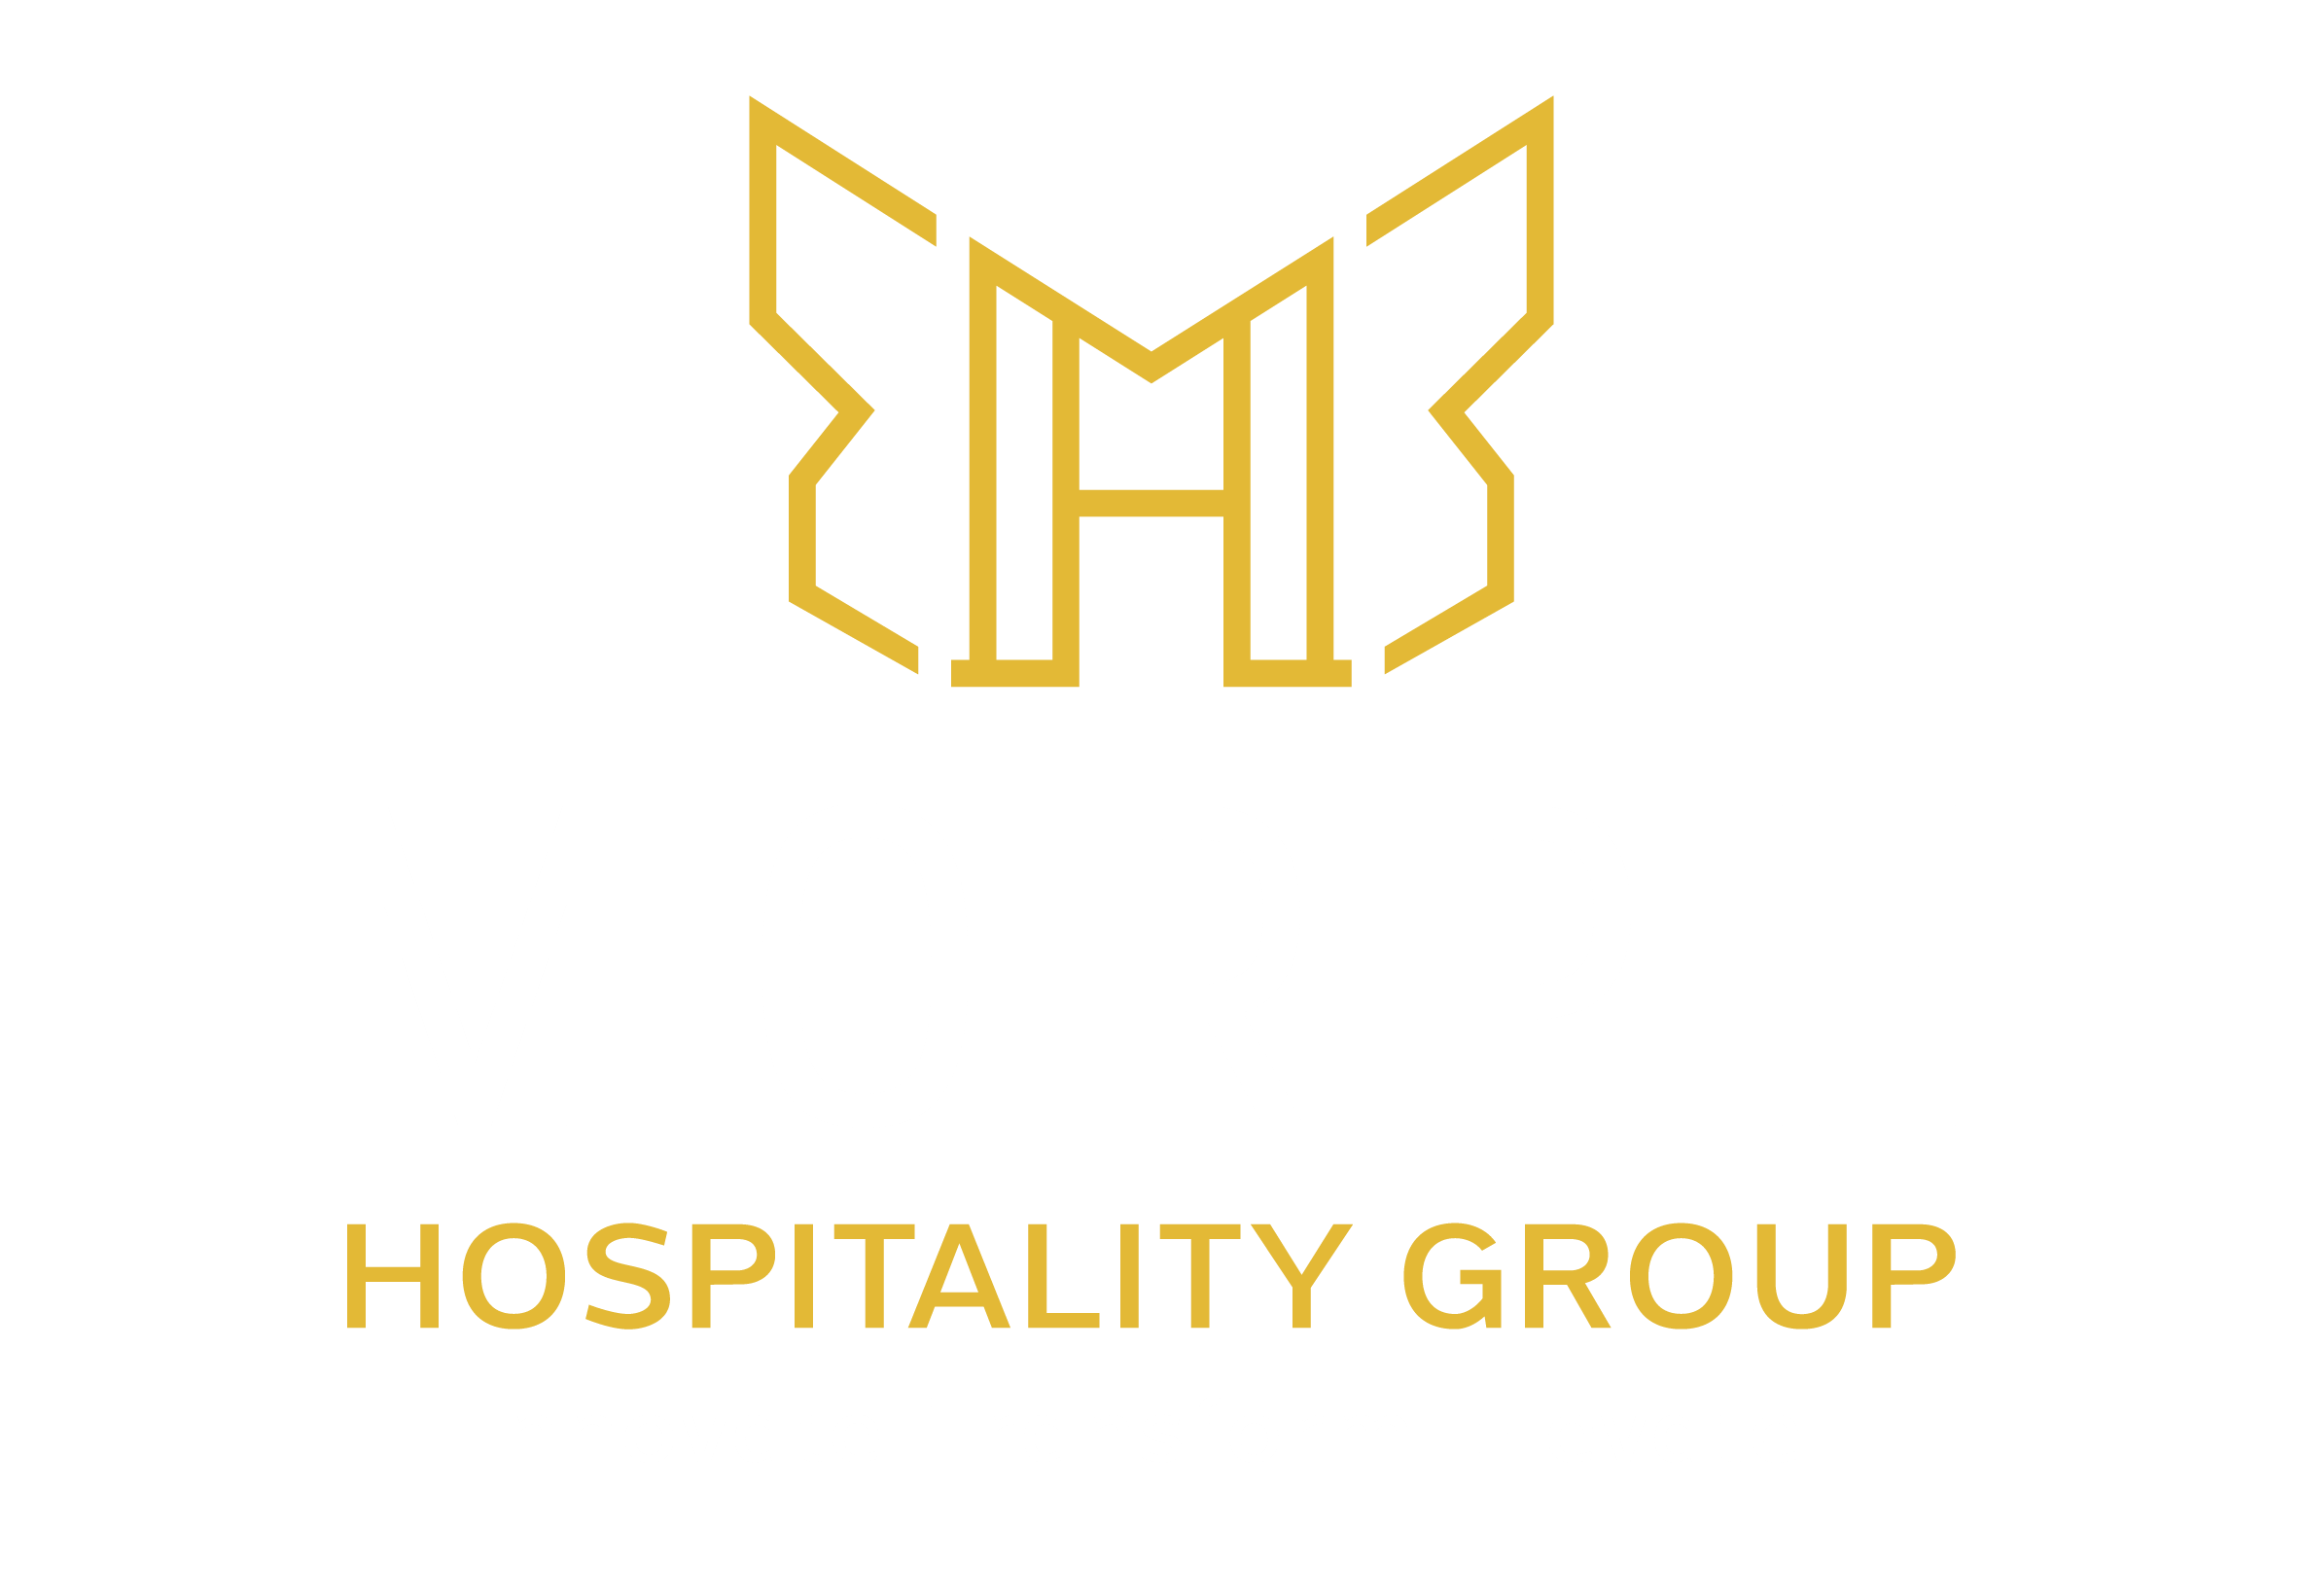 Morph Hospitality Group - Finale-02.png